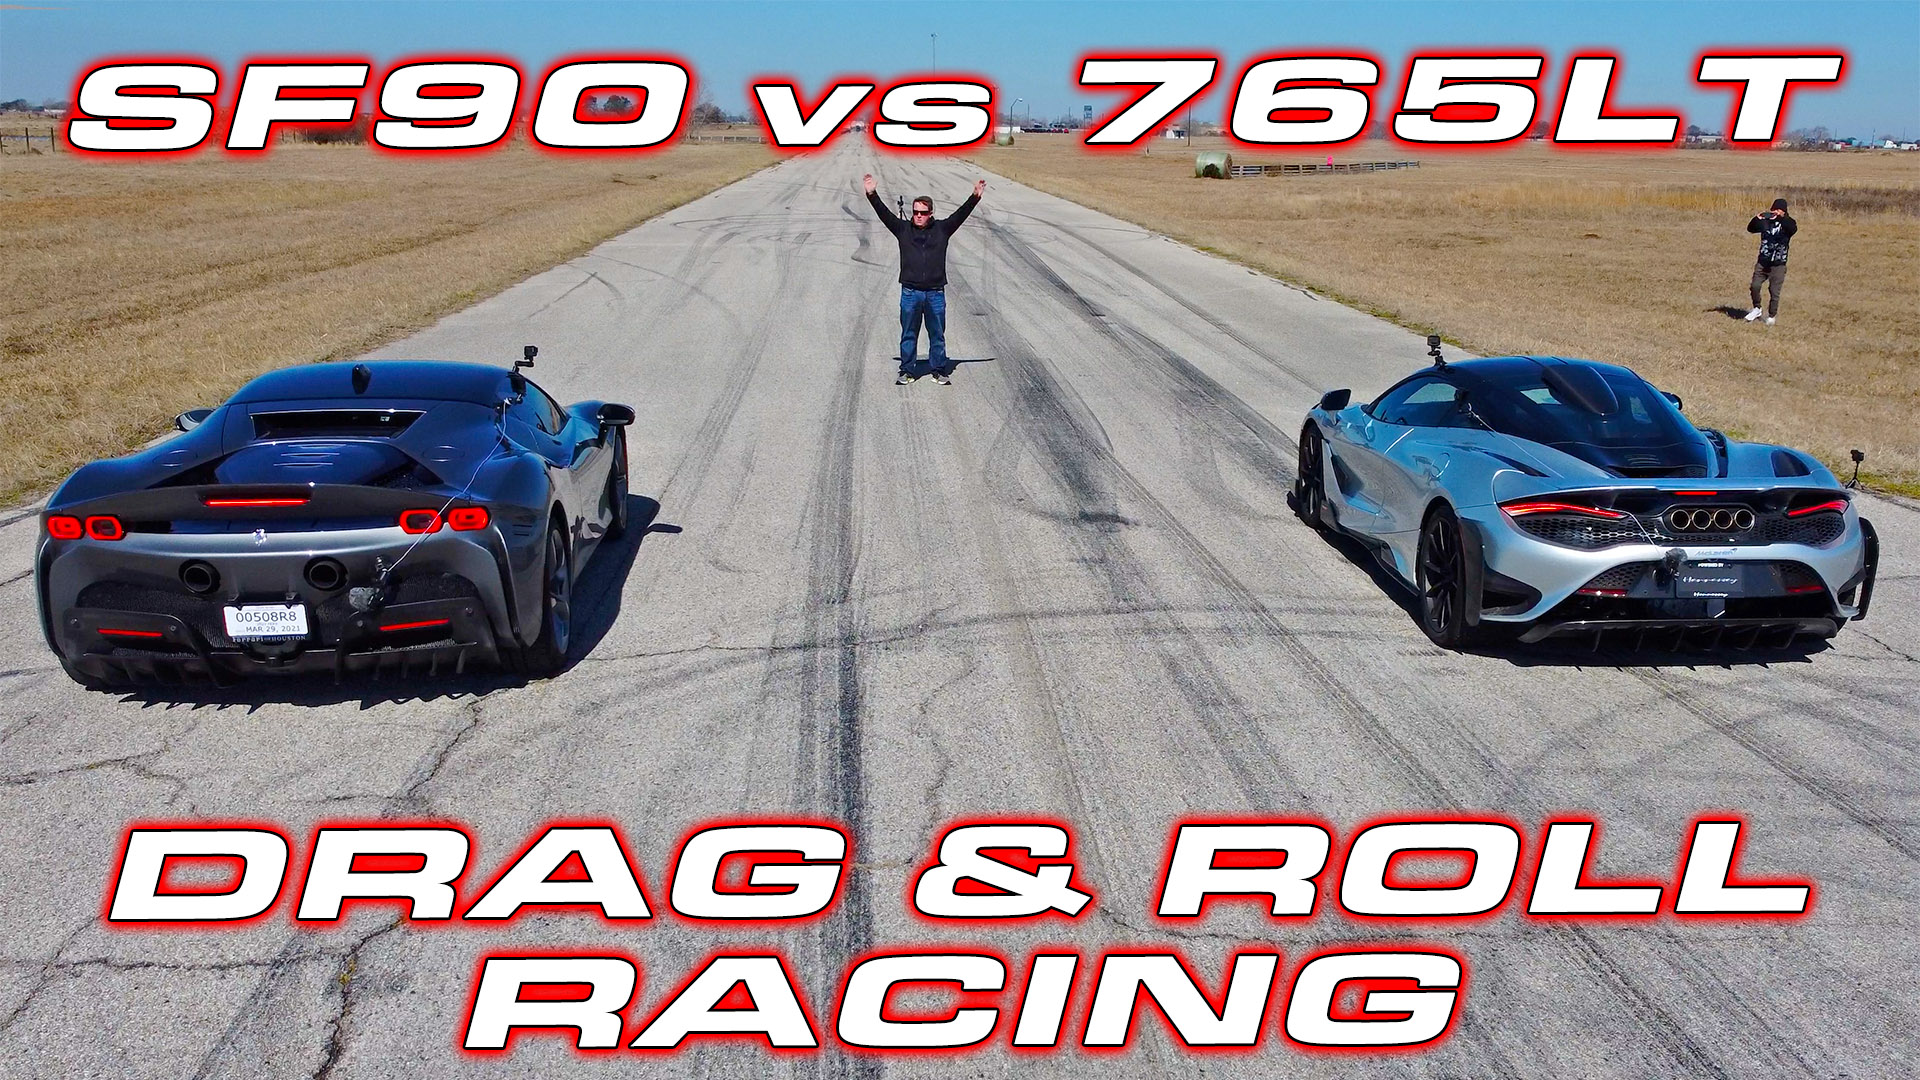 1,000 HP Ferrari SF90 vs McLaren 765LT Drag and Roll Racing